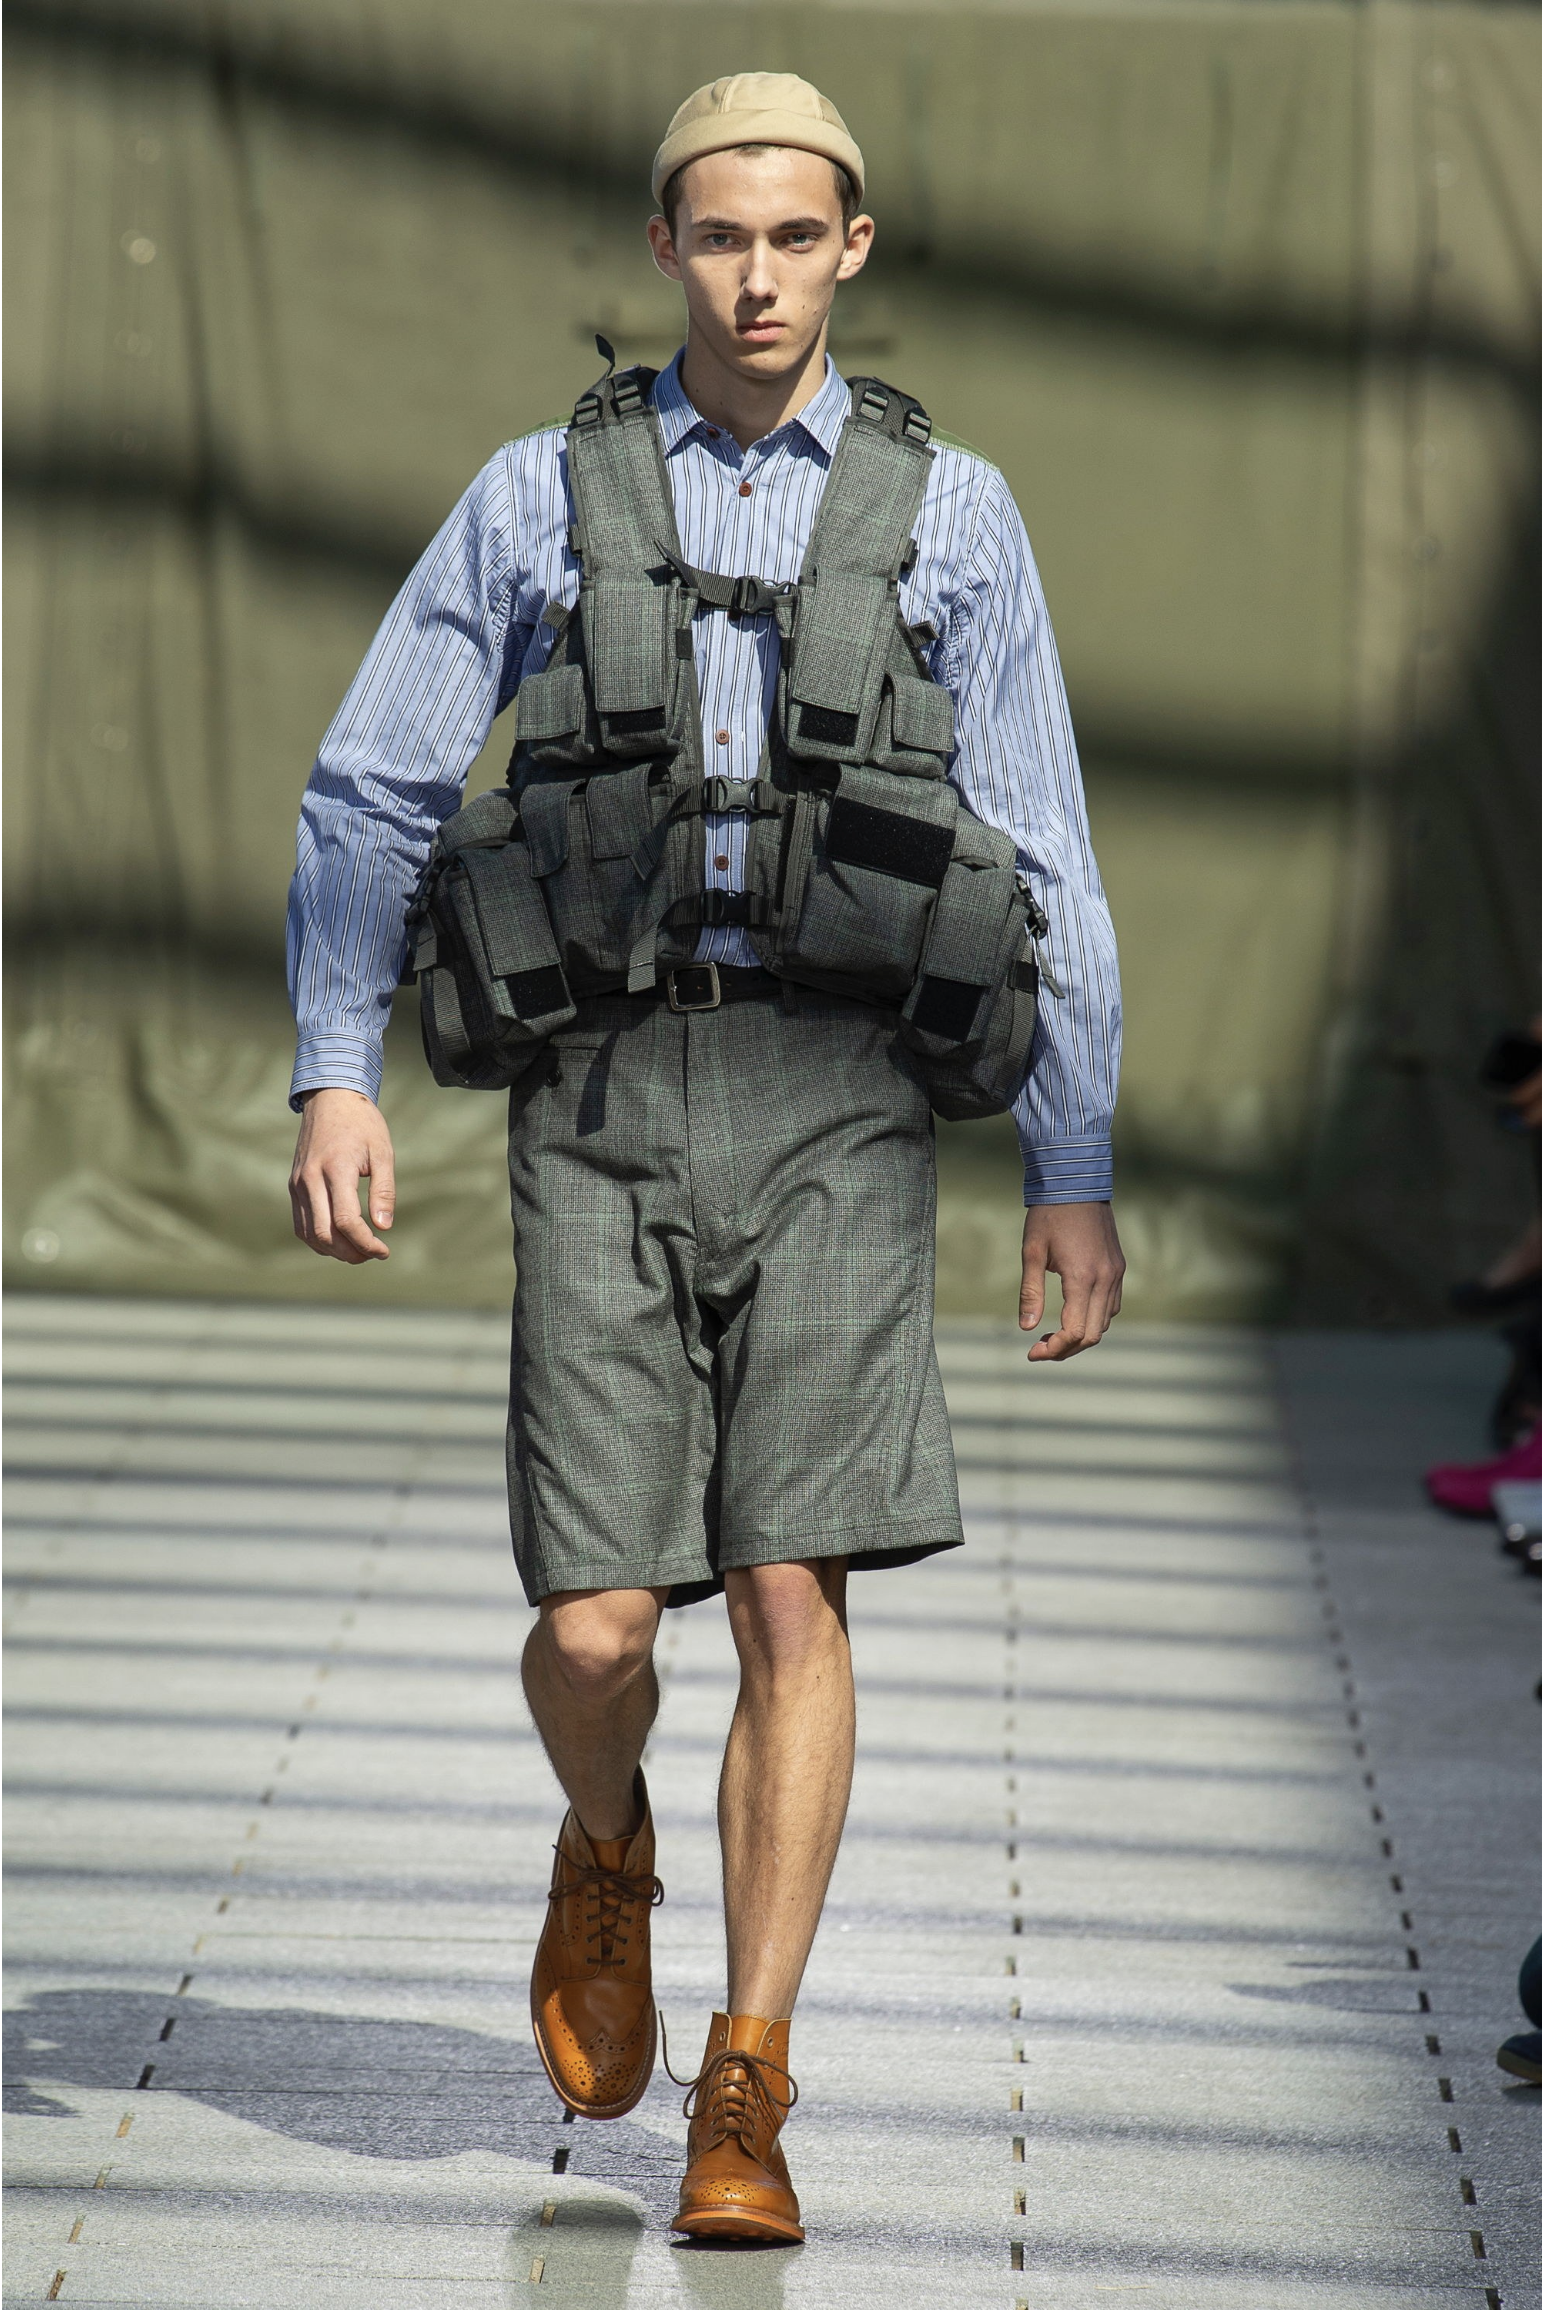 Image result for men's utility vest trend spring 2019